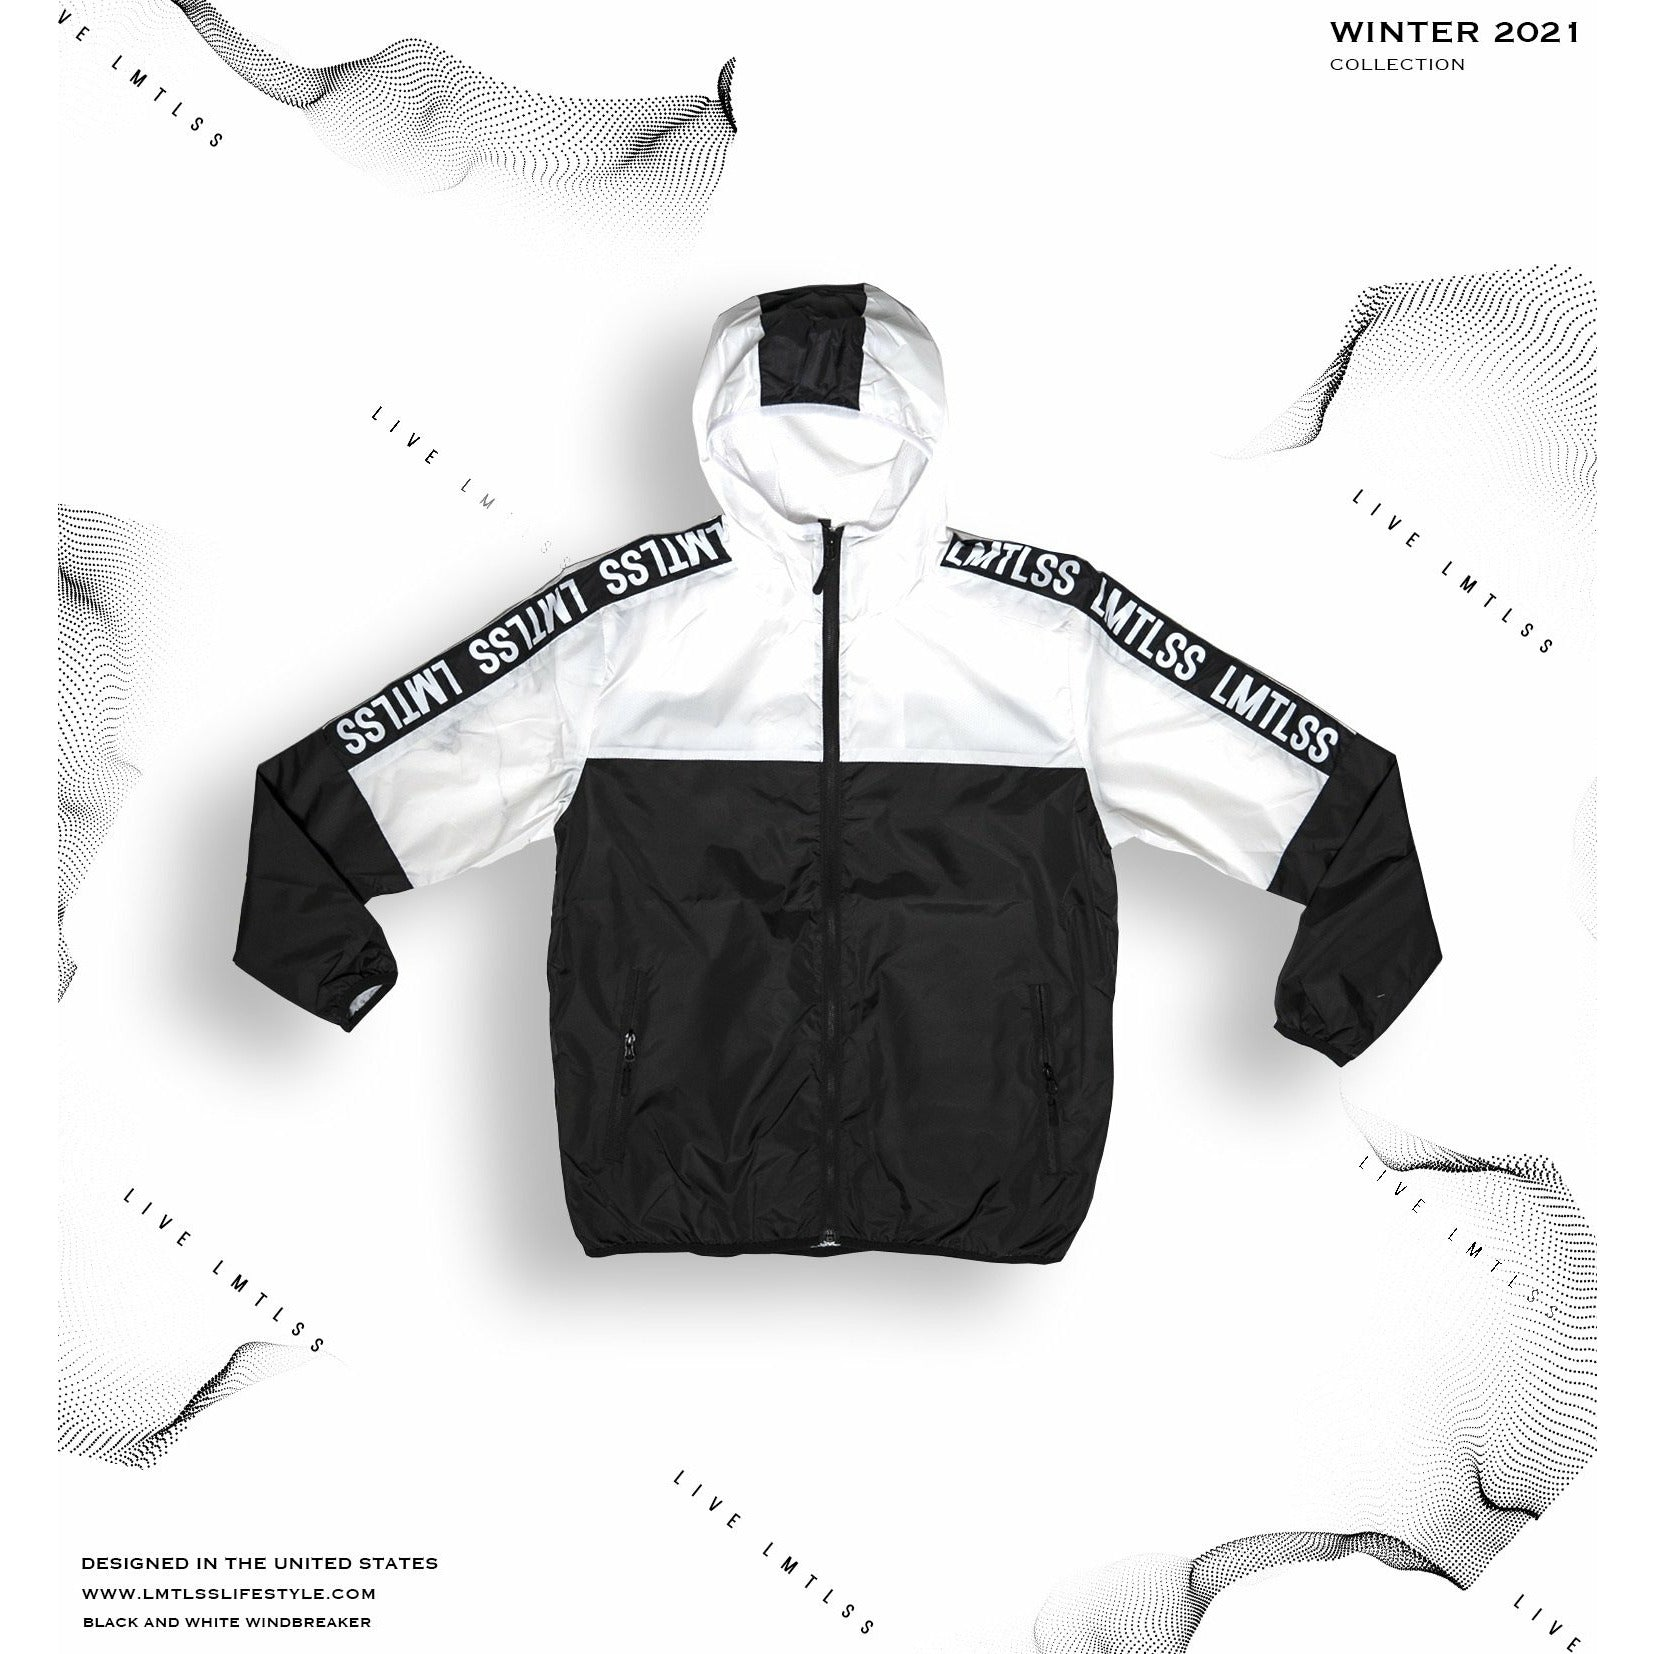 Black & White Windbreaker